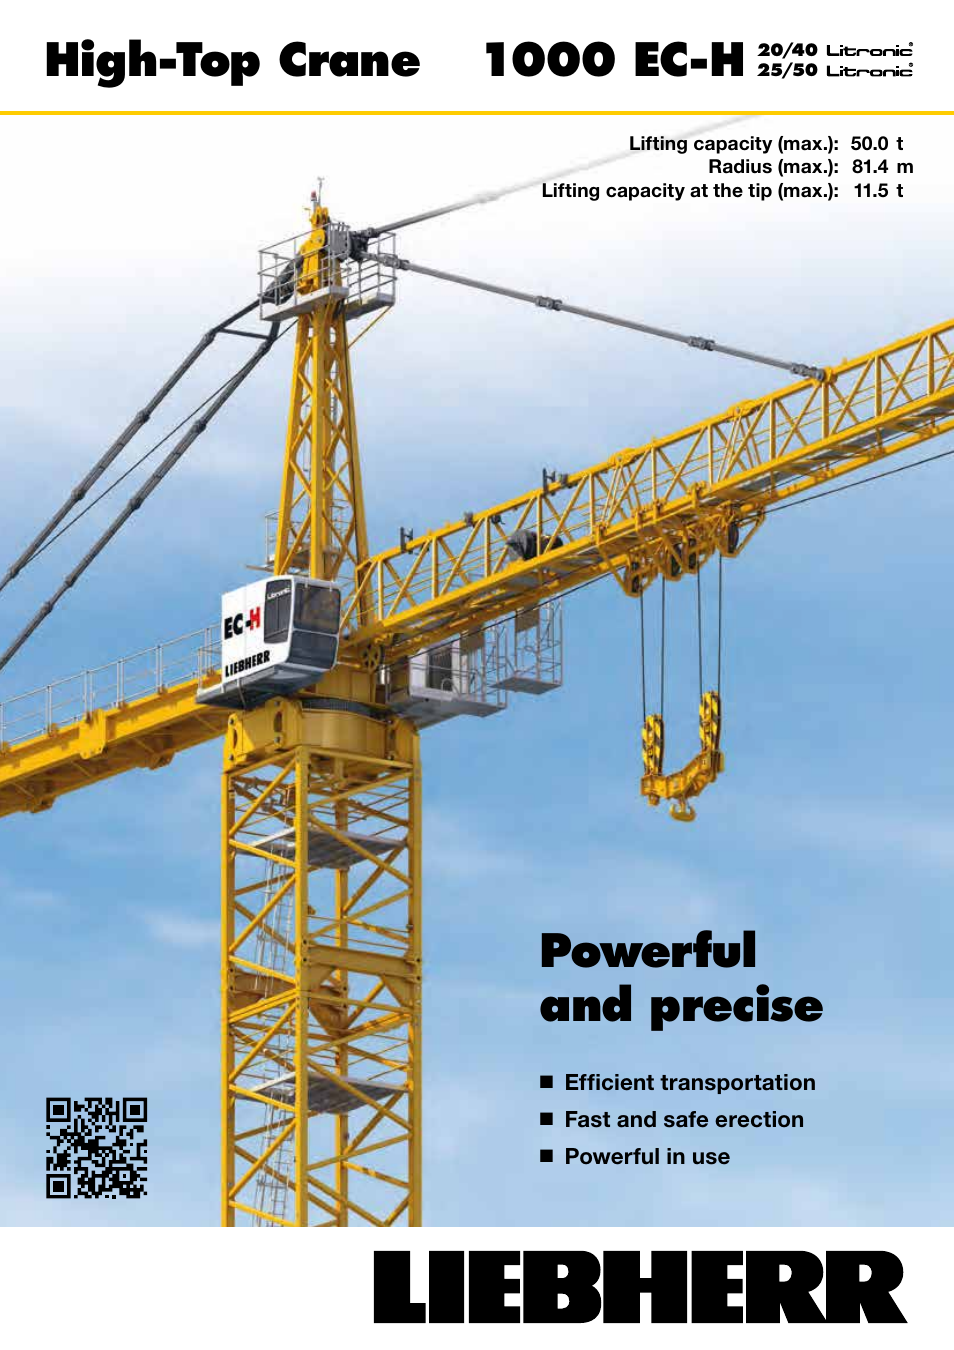 Liebherr 1000 Ec H 50 Litronic User Manual 4 Pages